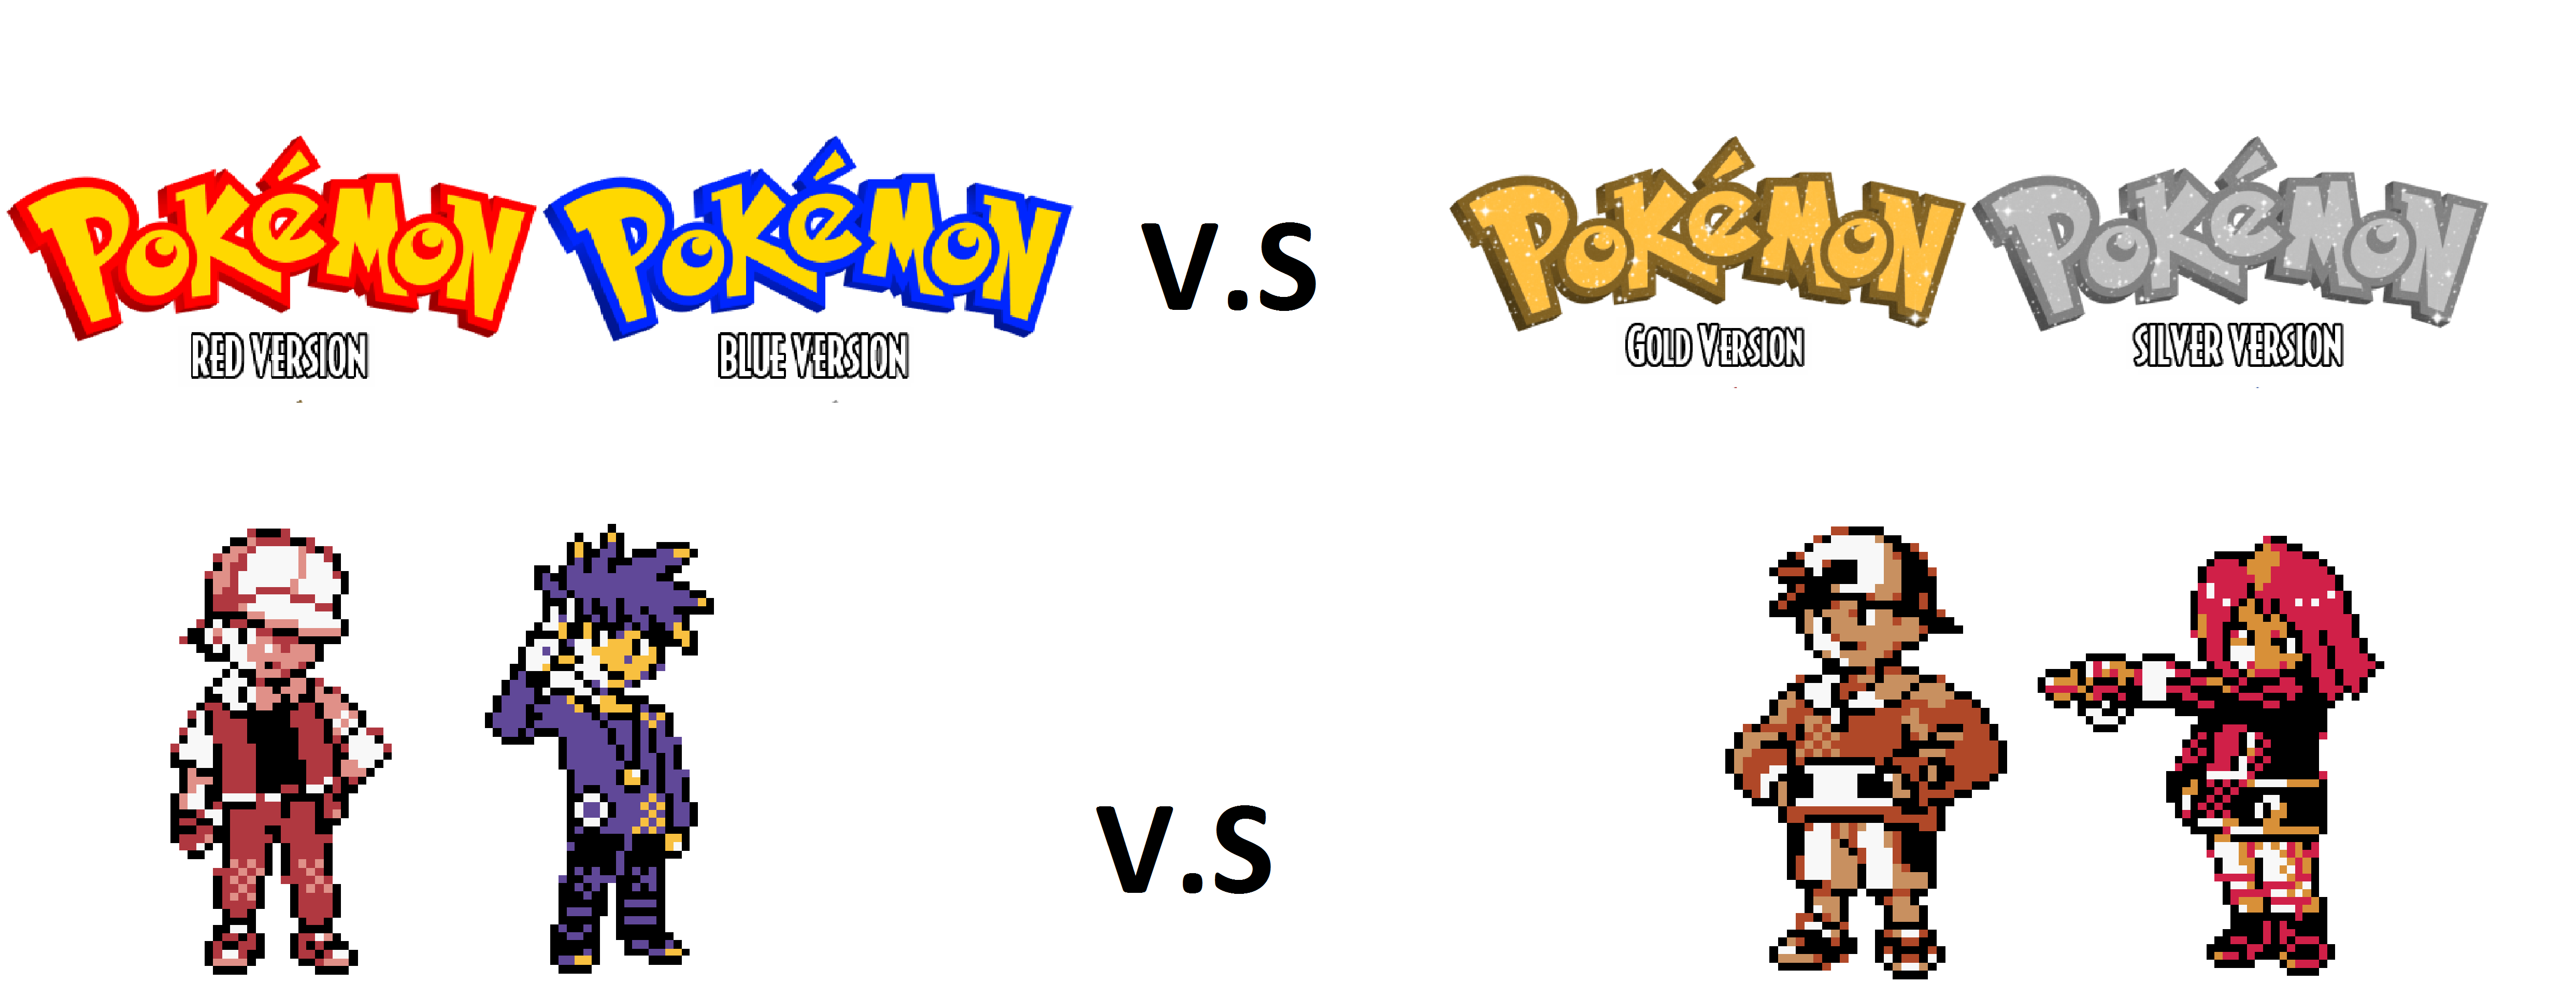 Pokemon Gold Vs Red Wallpaper Red and blue vs gold and 4972x1924